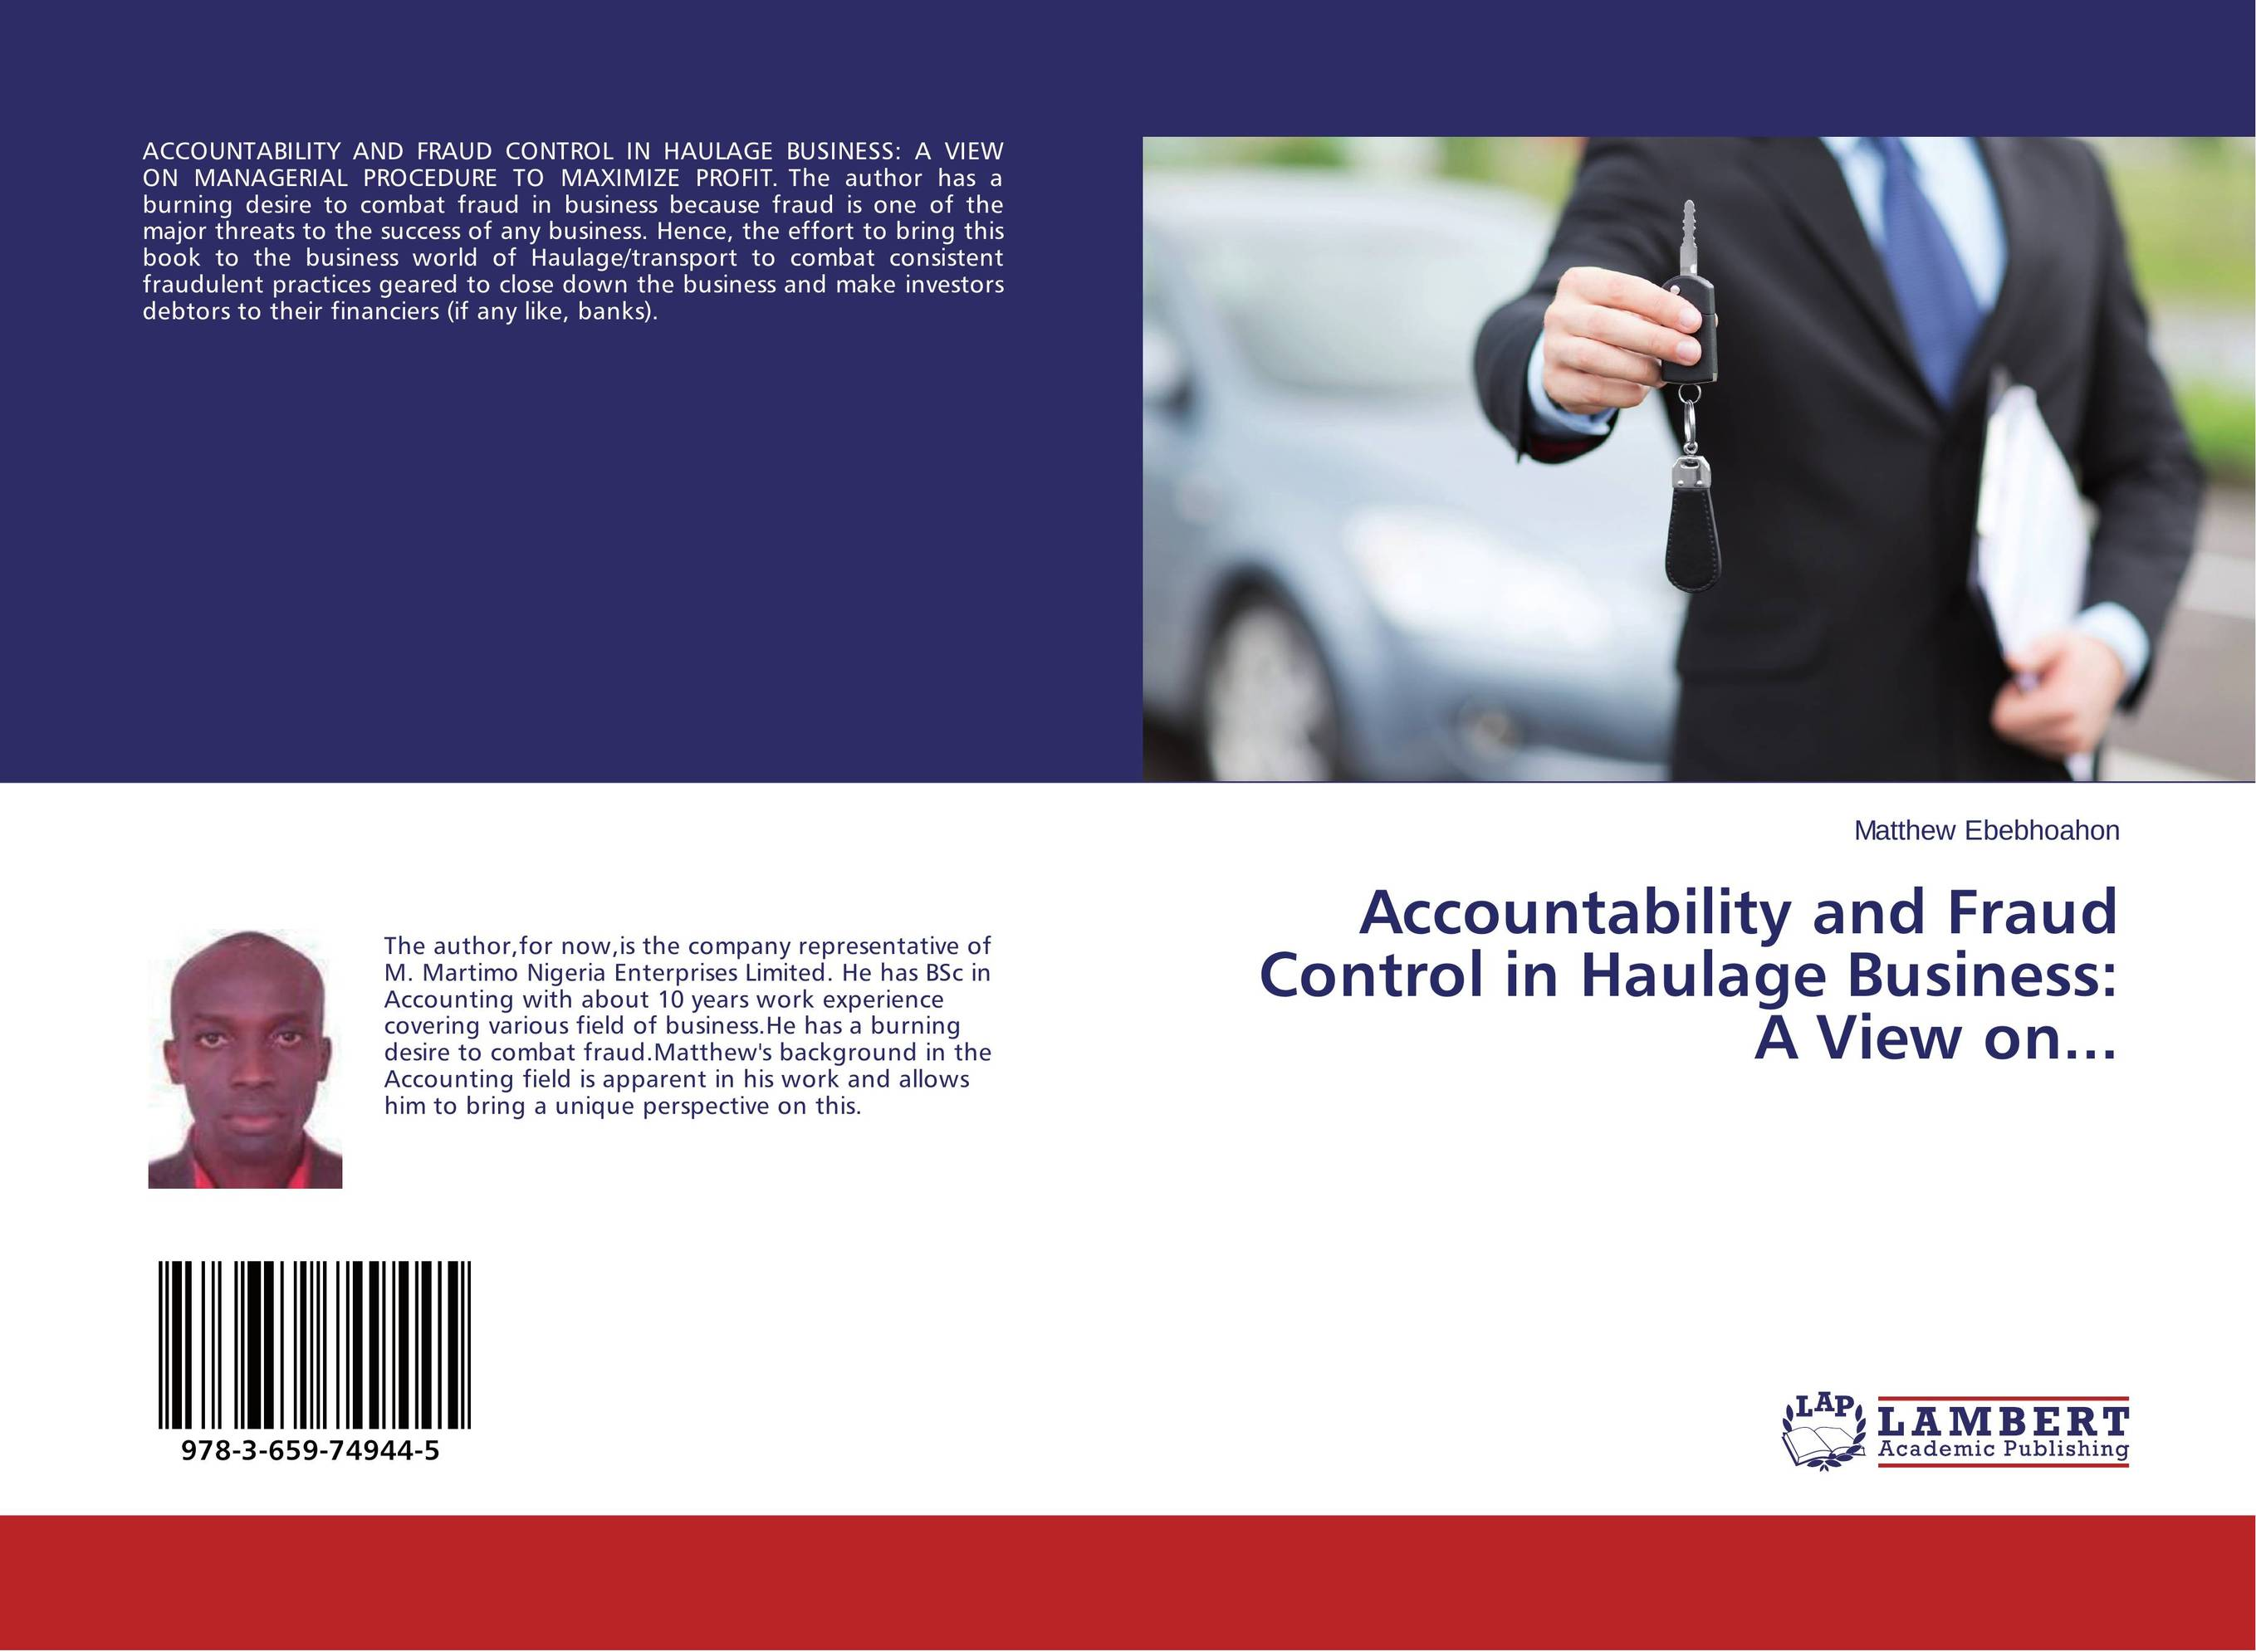 Accountability and Fraud Control in Haulage Business: A View on... martin biegelman t executive roadmap to fraud prevention and internal control creating a culture of compliance